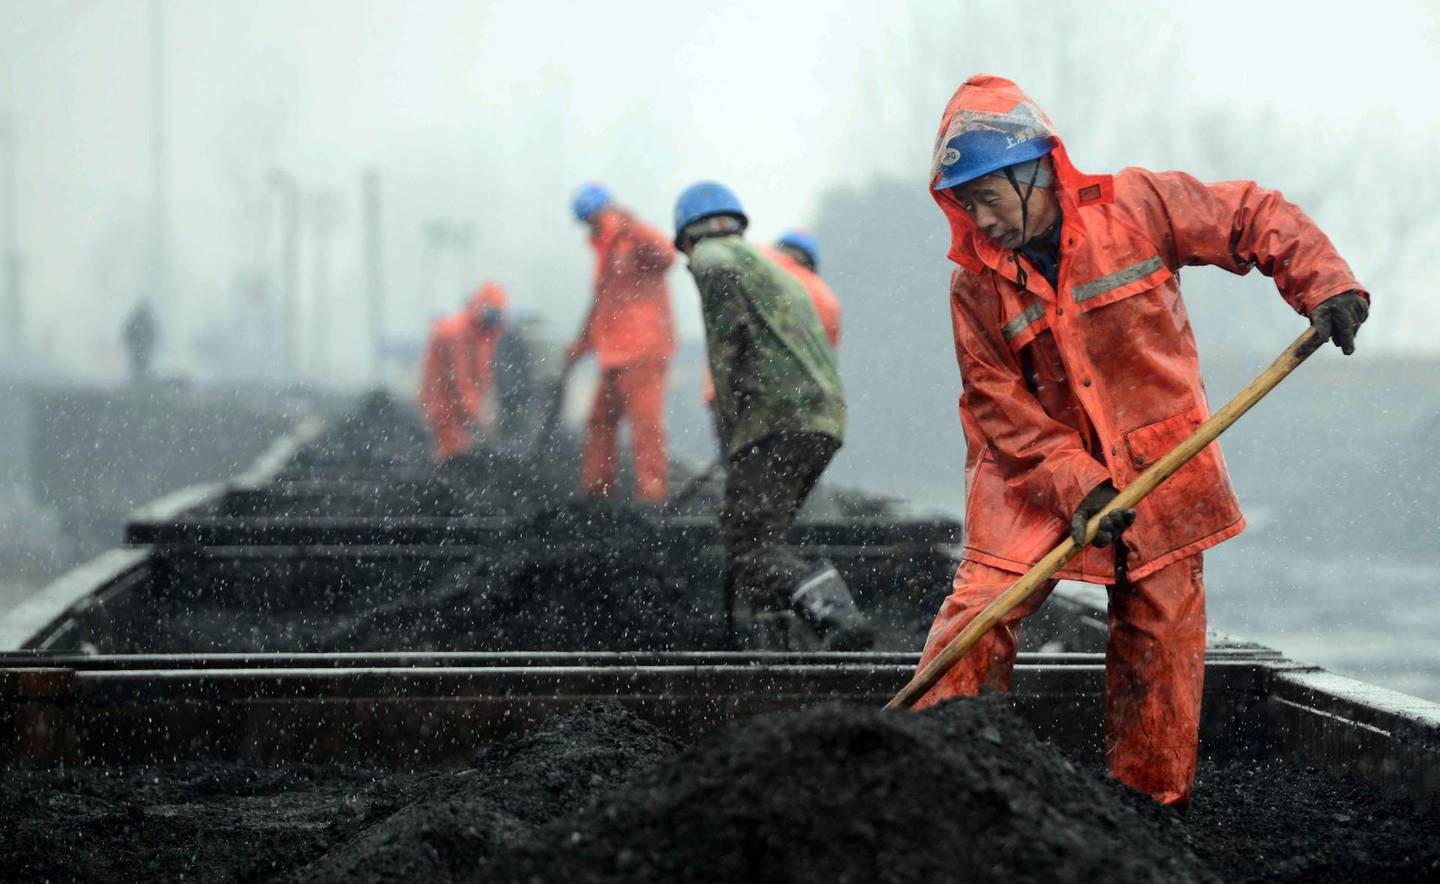 JIUJIANG, CHINA - JANUARY 22:  (CHINA OUT) Workers load coal onto railcars during a snowfall at a railway station on January 22, 2016 in Jiujiang, China. The National Meteorological Center (NMC) on Friday issued a yellow alert for blizzards that are expected to sweep China's northern, central and eastern regions.  (Photo by VCG/VCG via Getty Images)